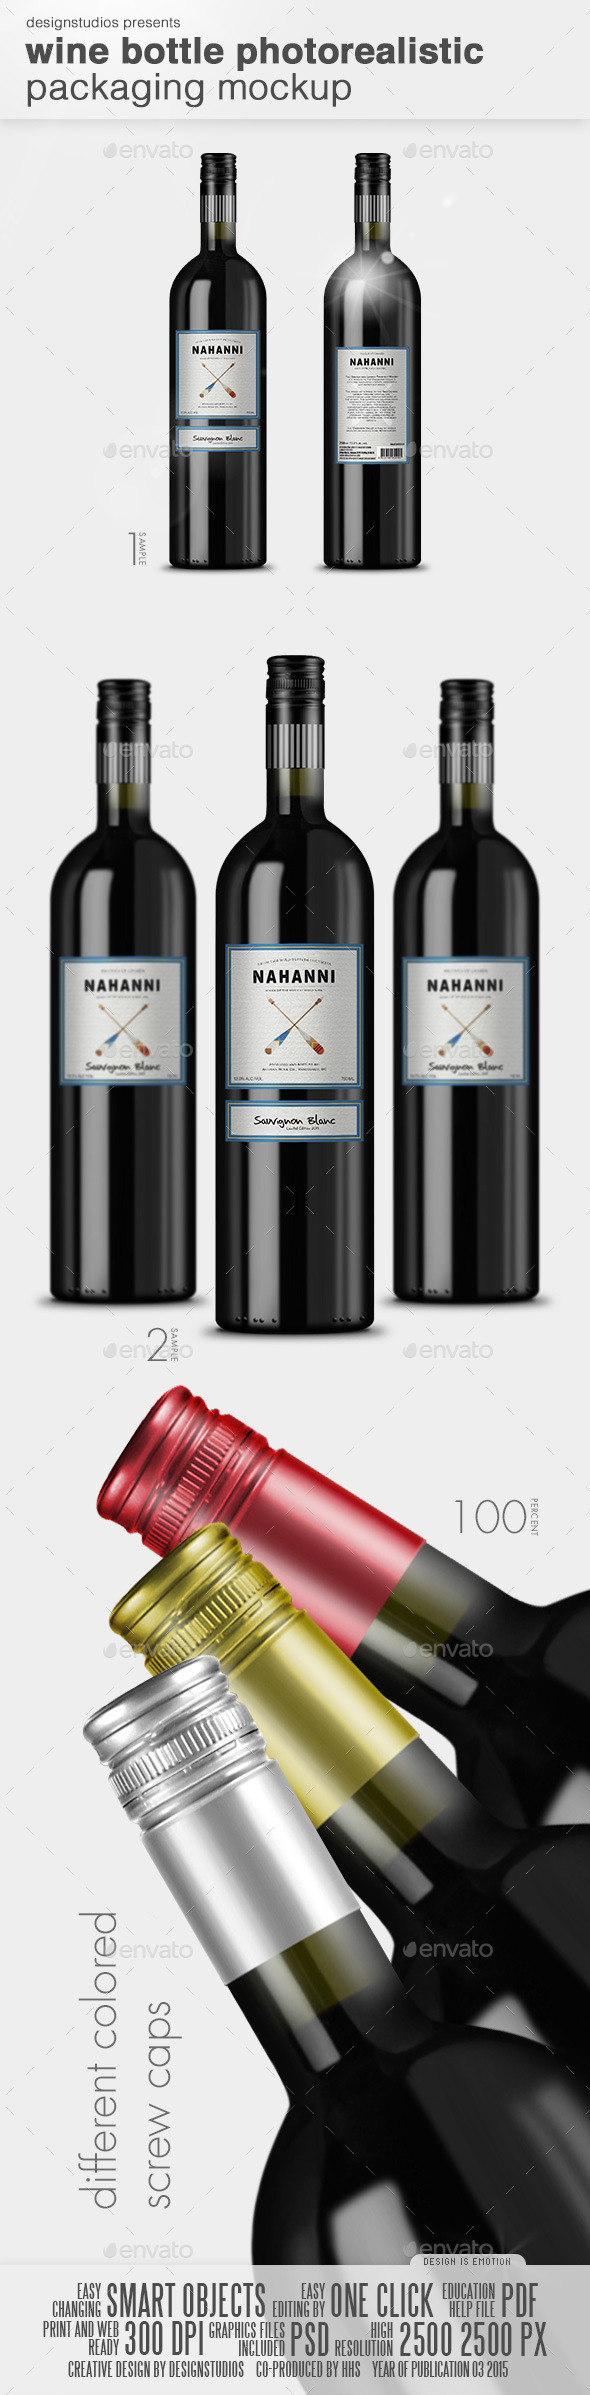 Wine Bottle Photorealistic Packaging Mock-Up